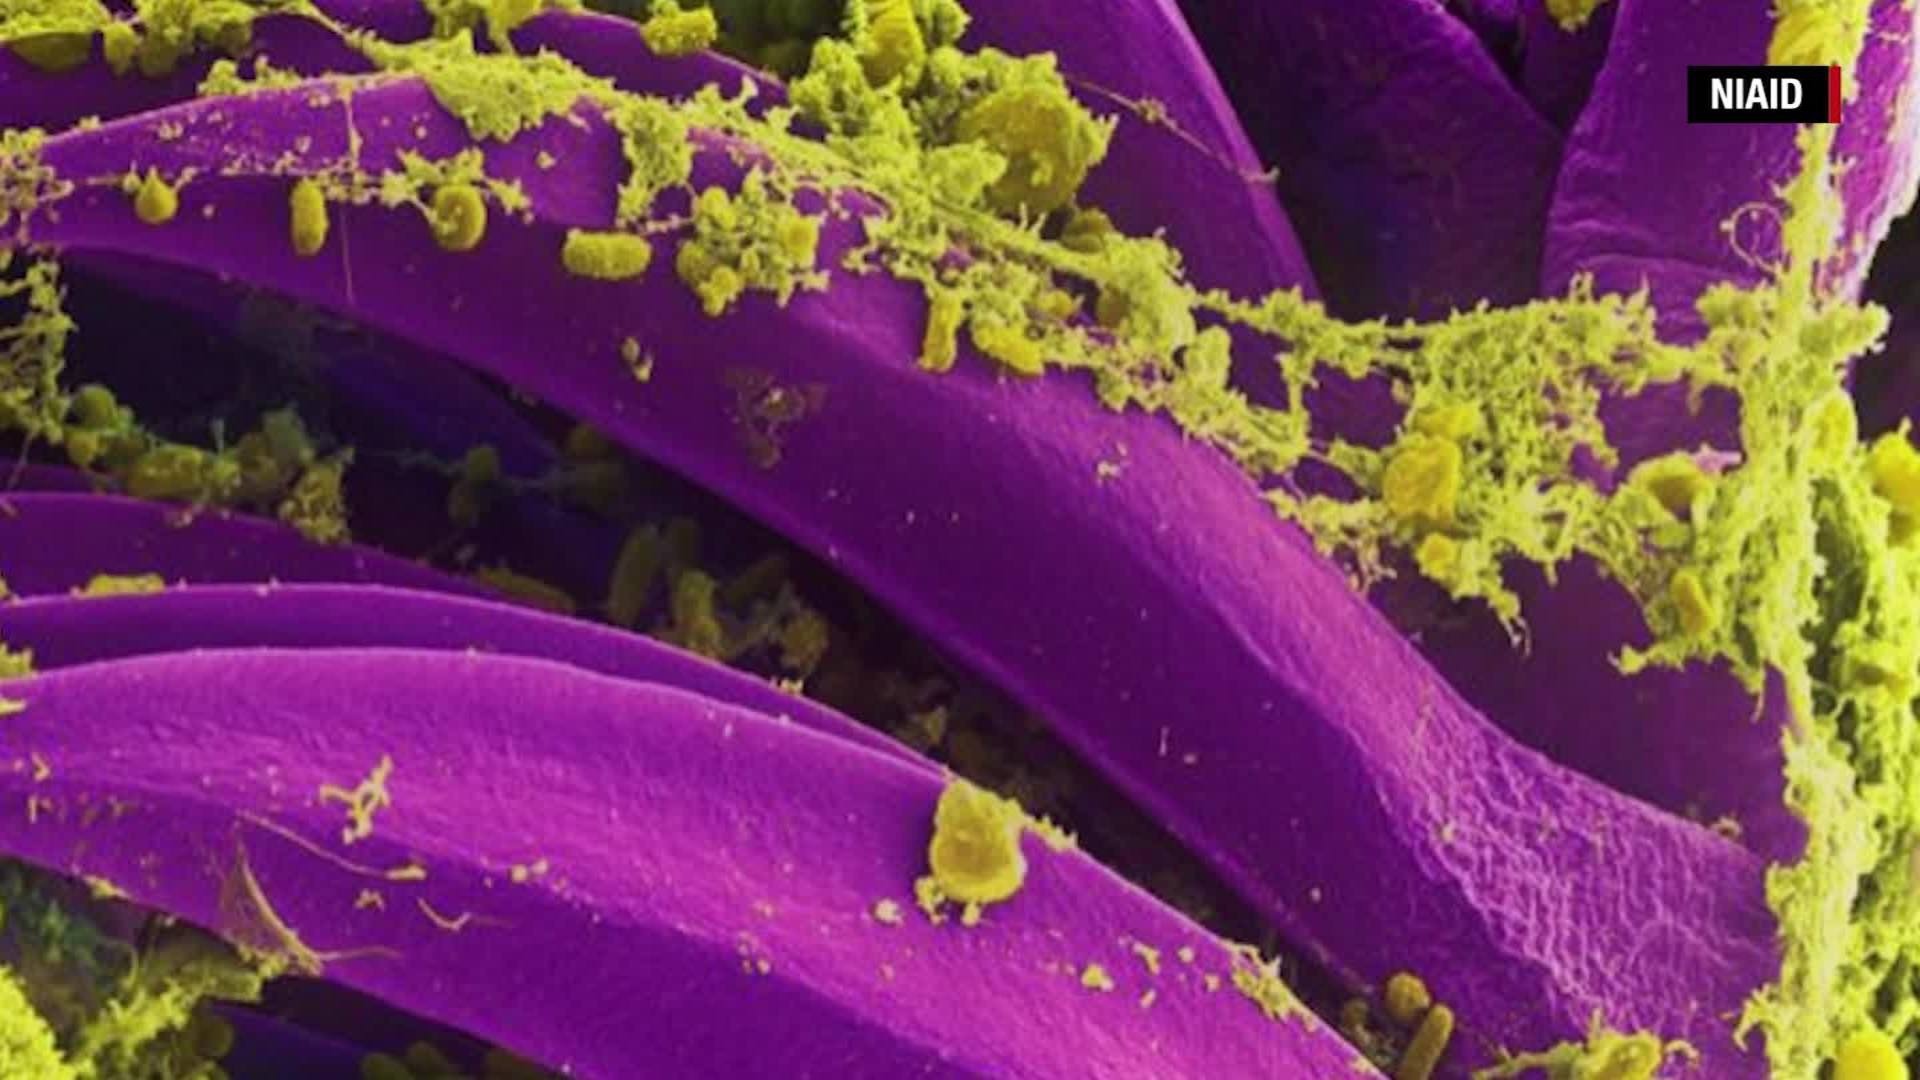 A New Mexico man has died from the state's second reported case of plague this year